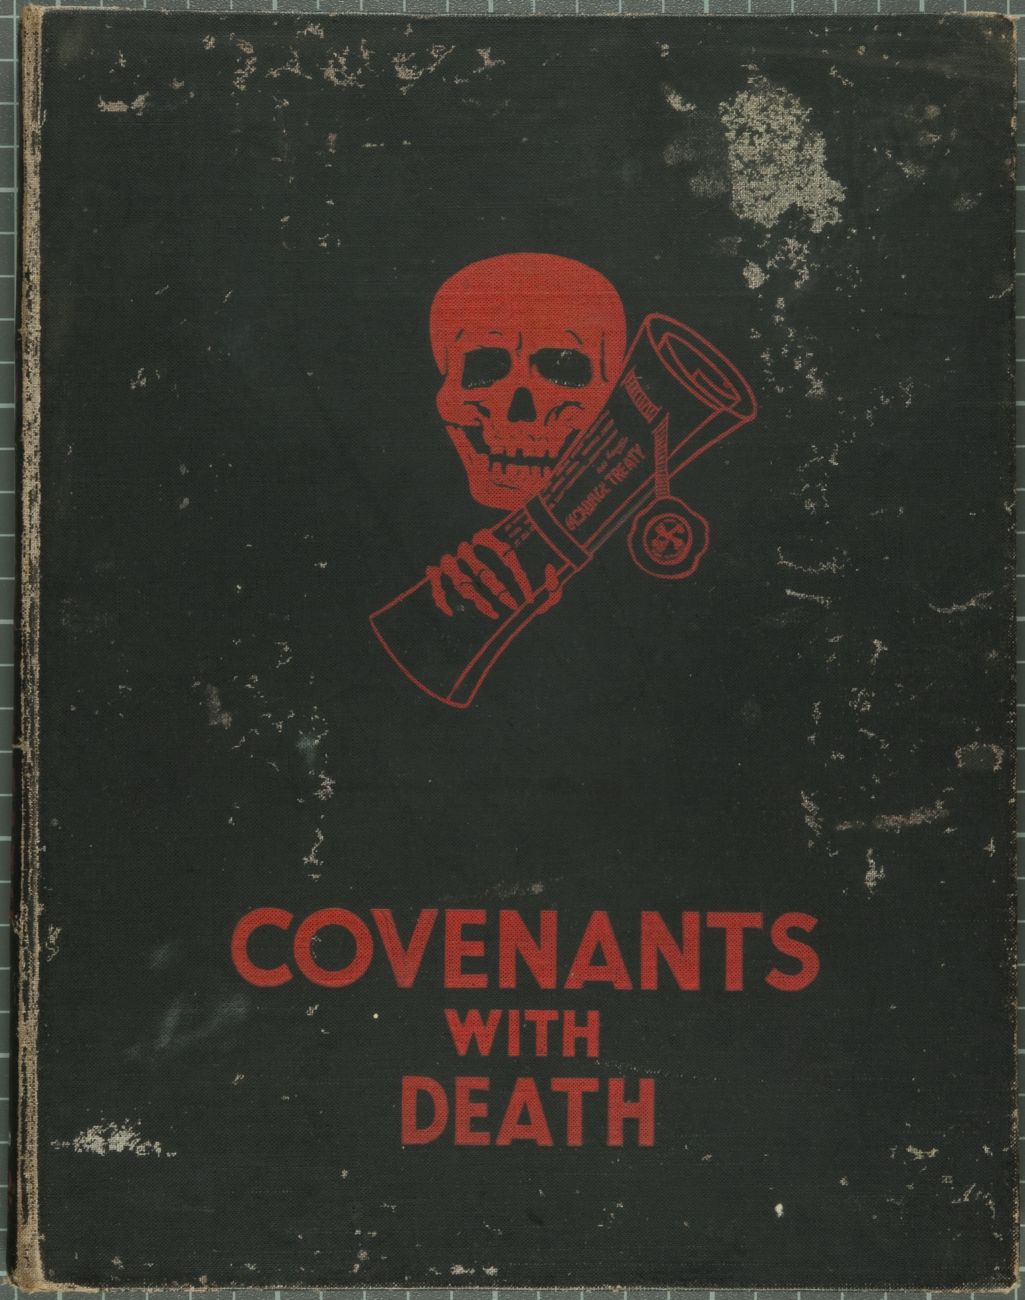 Covenants with Death